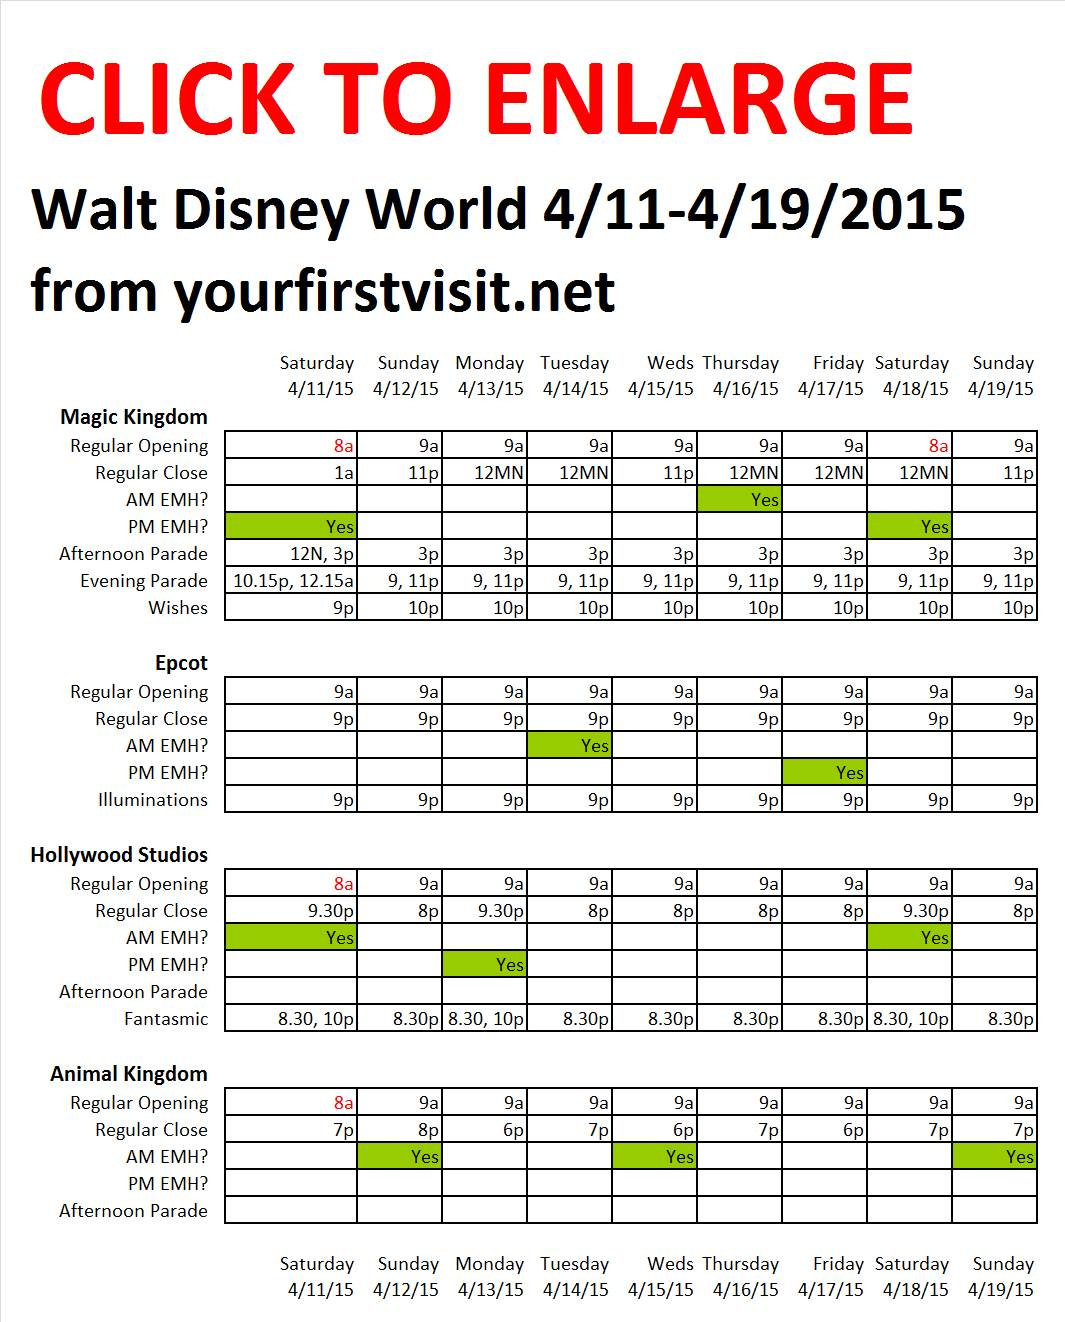 Disney World 4-11 to 4-19-2015 from yourfirstvisit.net